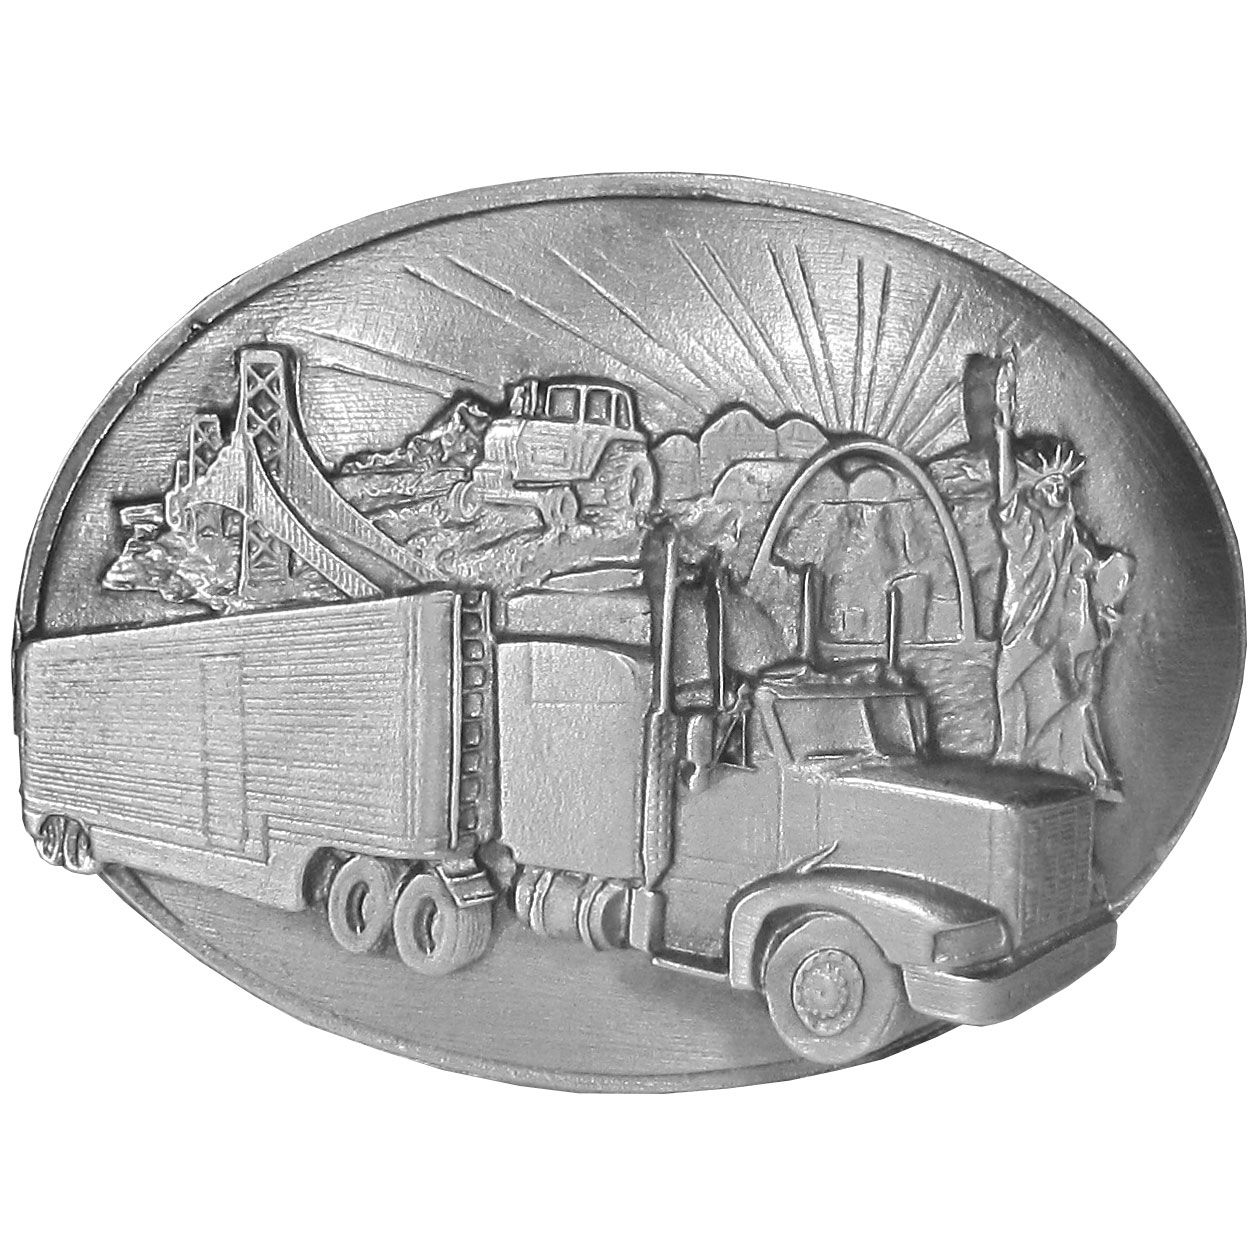 "Long Haul Trucker Antiqued Belt Buckle - This belt buckle is for the Long Haul Trucker!  There is a long haul semi truck surrounded by scenes of America including the Statue of Liberty and the Golden Gate Bridge. This exquisitely carved buckle is made of fully cast metal with a standard bale that fits up to 2"" belts."